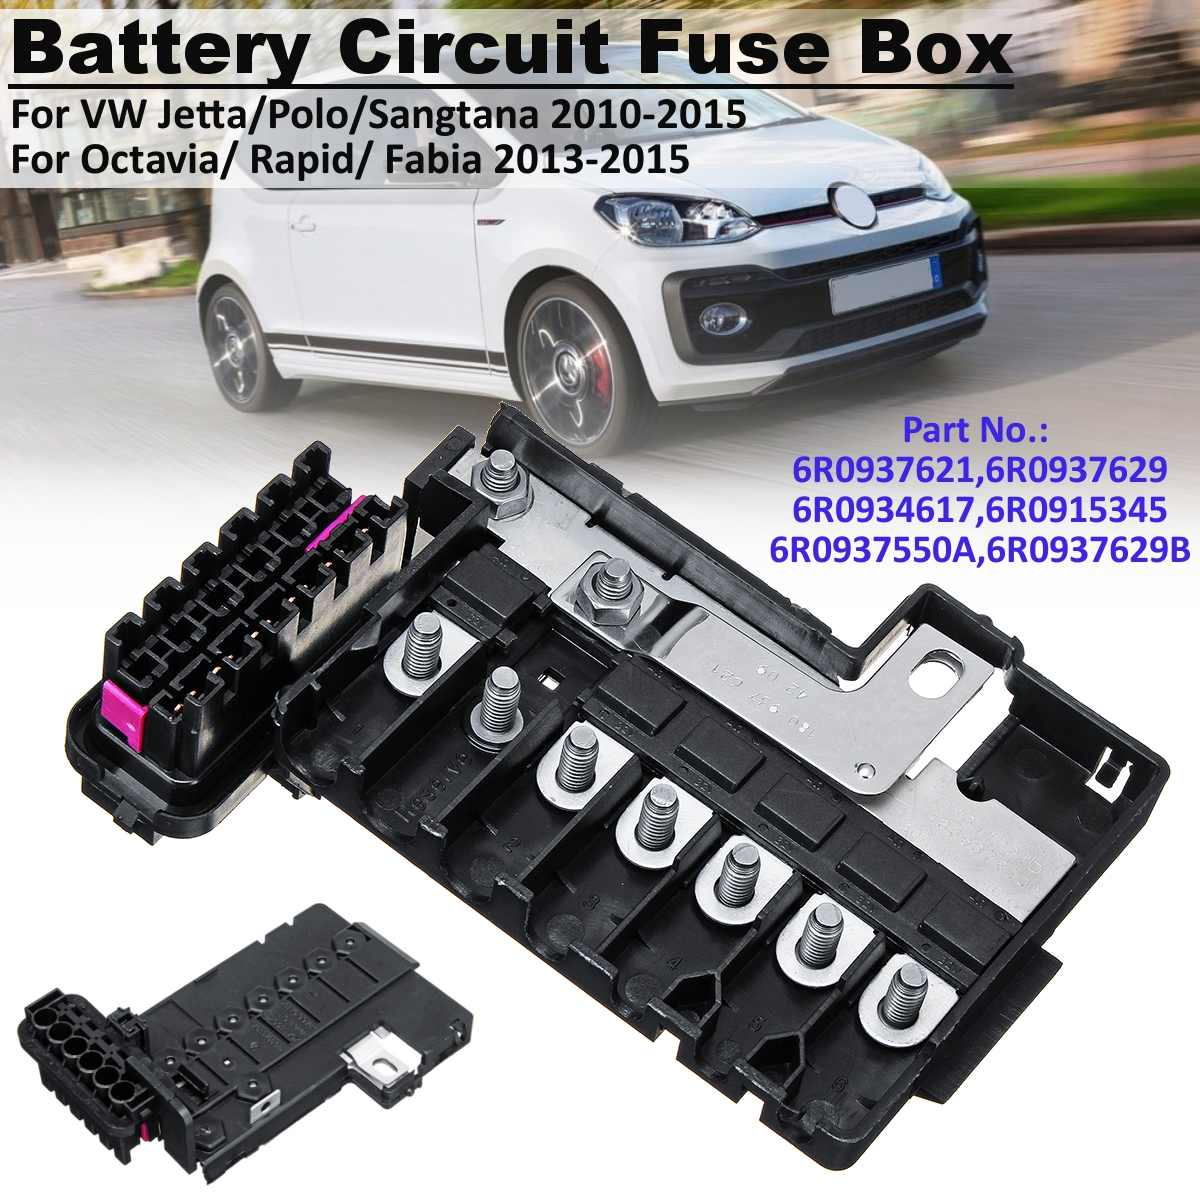 Fuse Box Vw Polo 1 2 vw polo 2001 fuse box location 2012 vw ... Vw Polo Mk Fuse Box Location on vw polo tie rod, vw passat fuse box, vw bus fuse box, vw beetle fuse box diagram, vw polo tail light, vw tiguan fuse box, vw polo steering column, vw eos fuse box, vw jetta fuse box diagram, vw golf fuse box, vw polo engine, vw polo horn, vw rabbit fuse box, vw touareg fuse box,